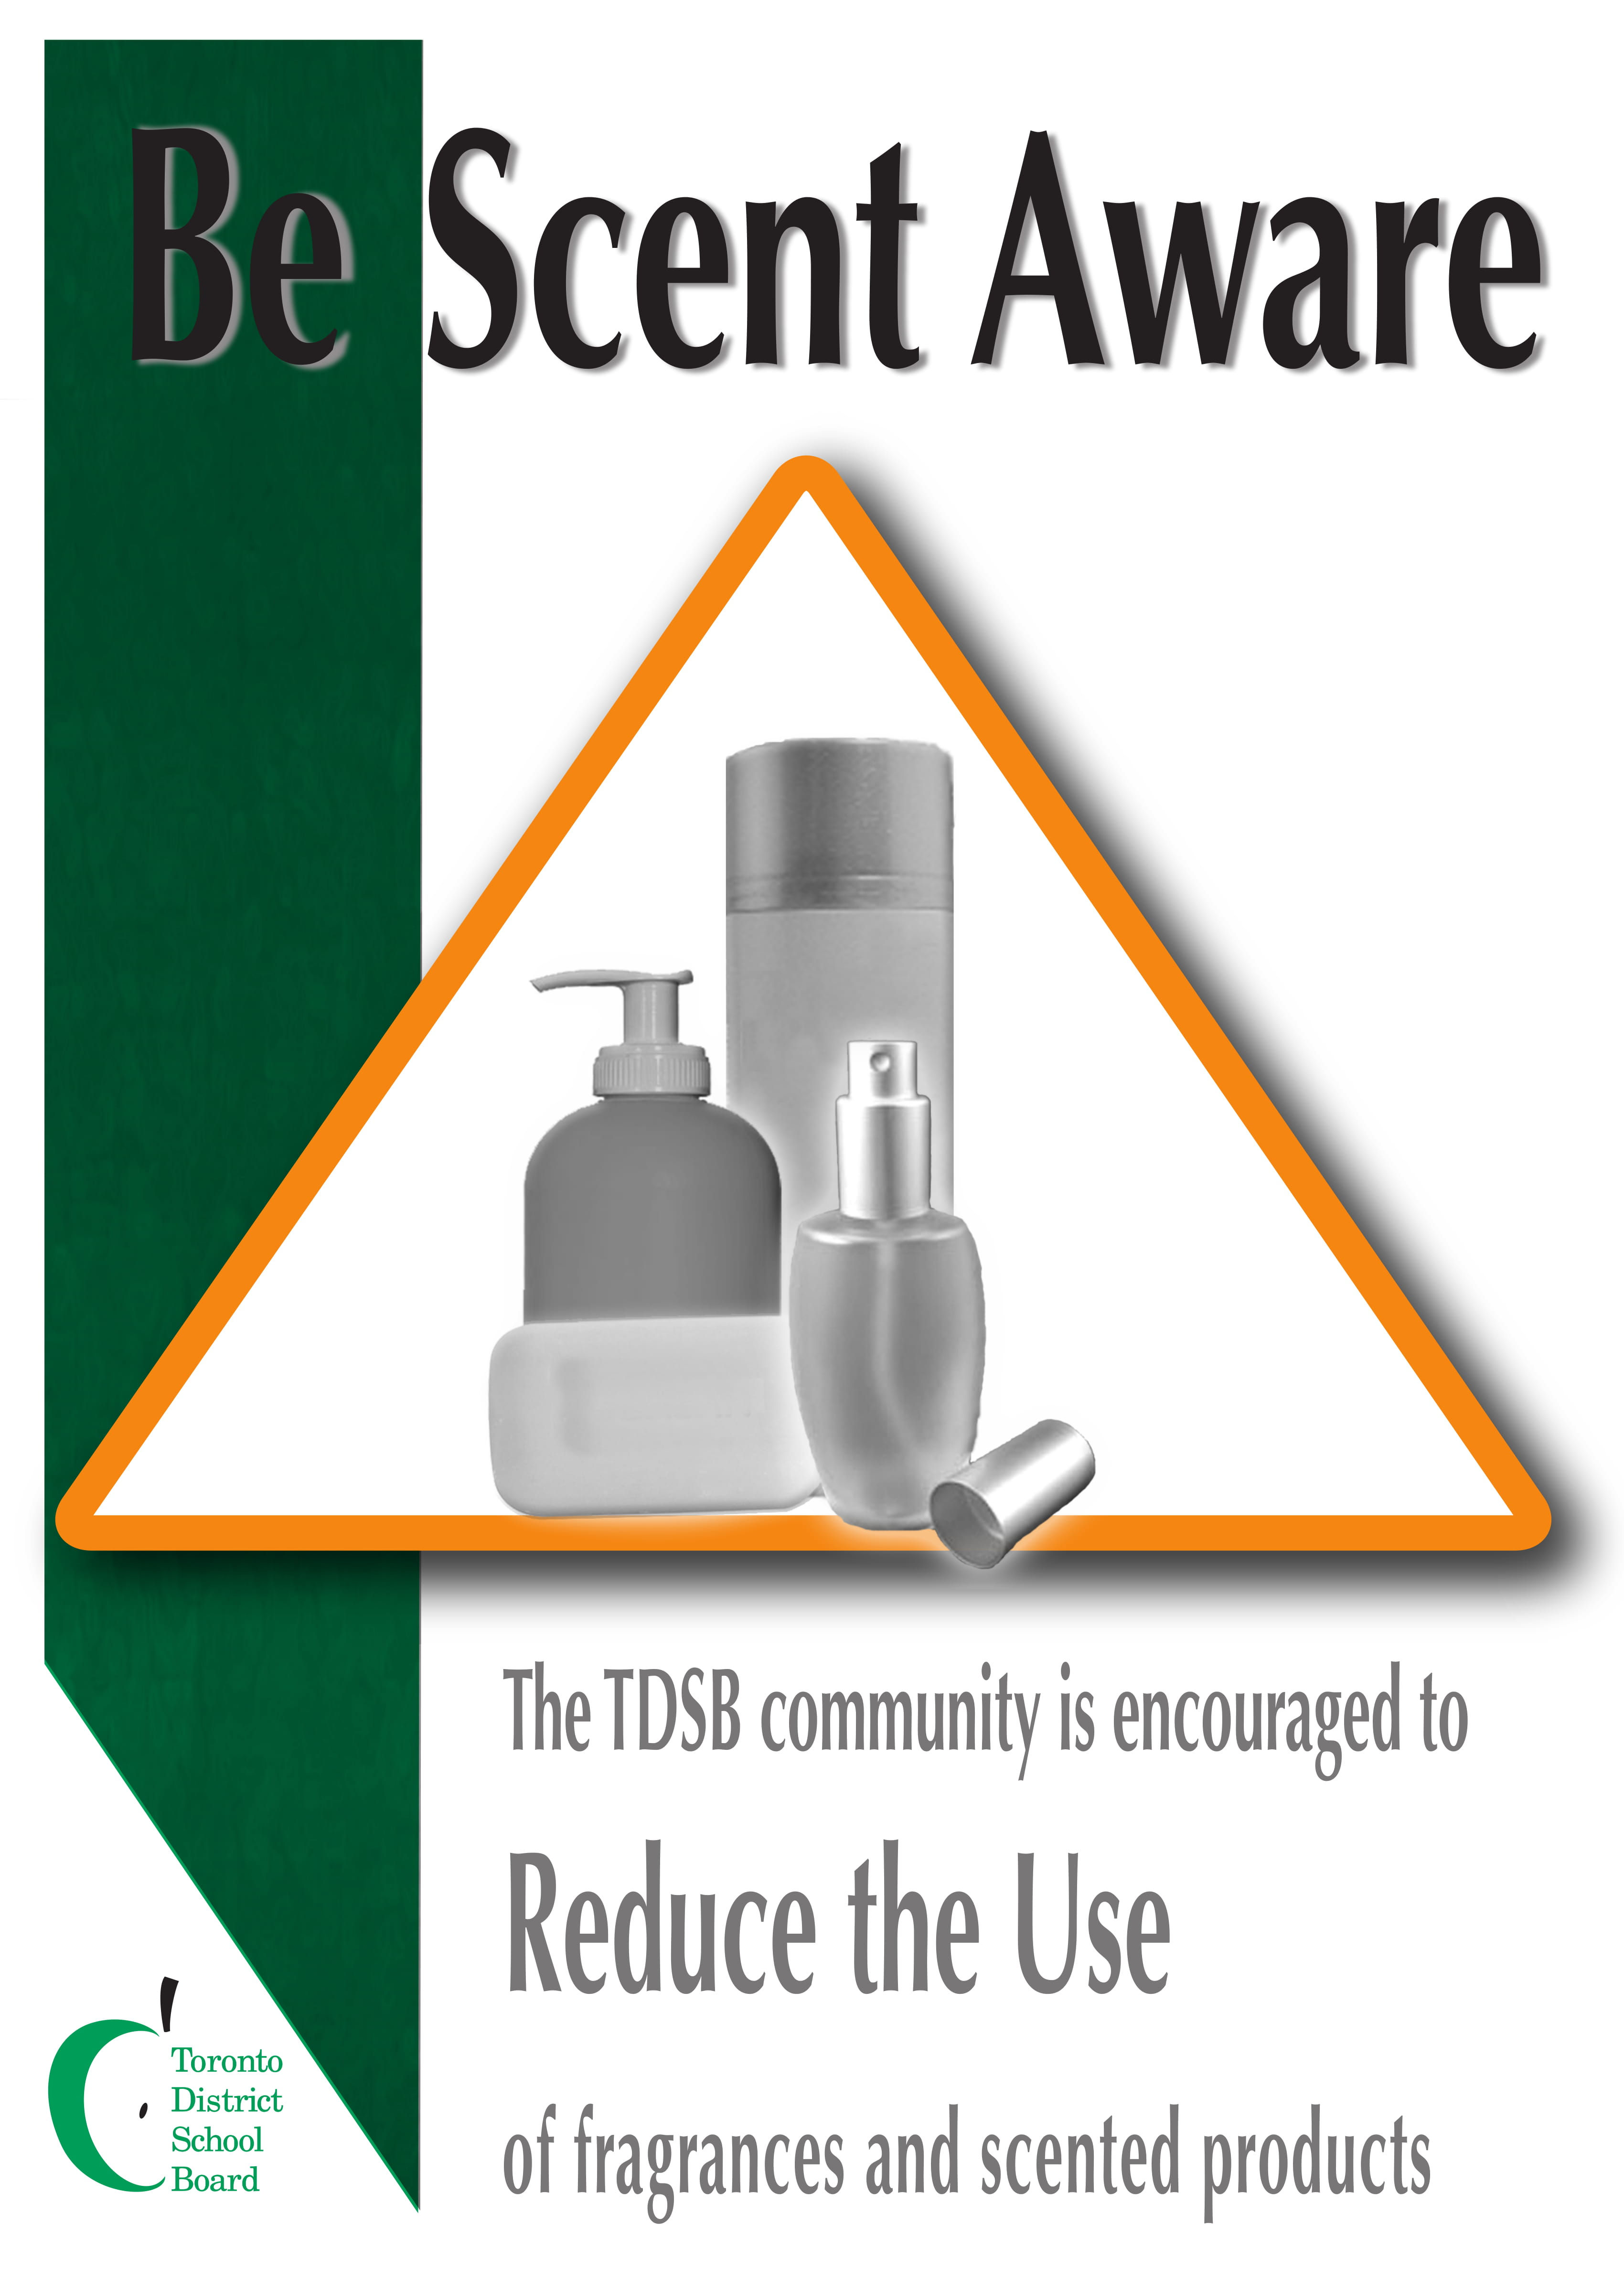 Scent Awareness Poster - Be Scent Aware